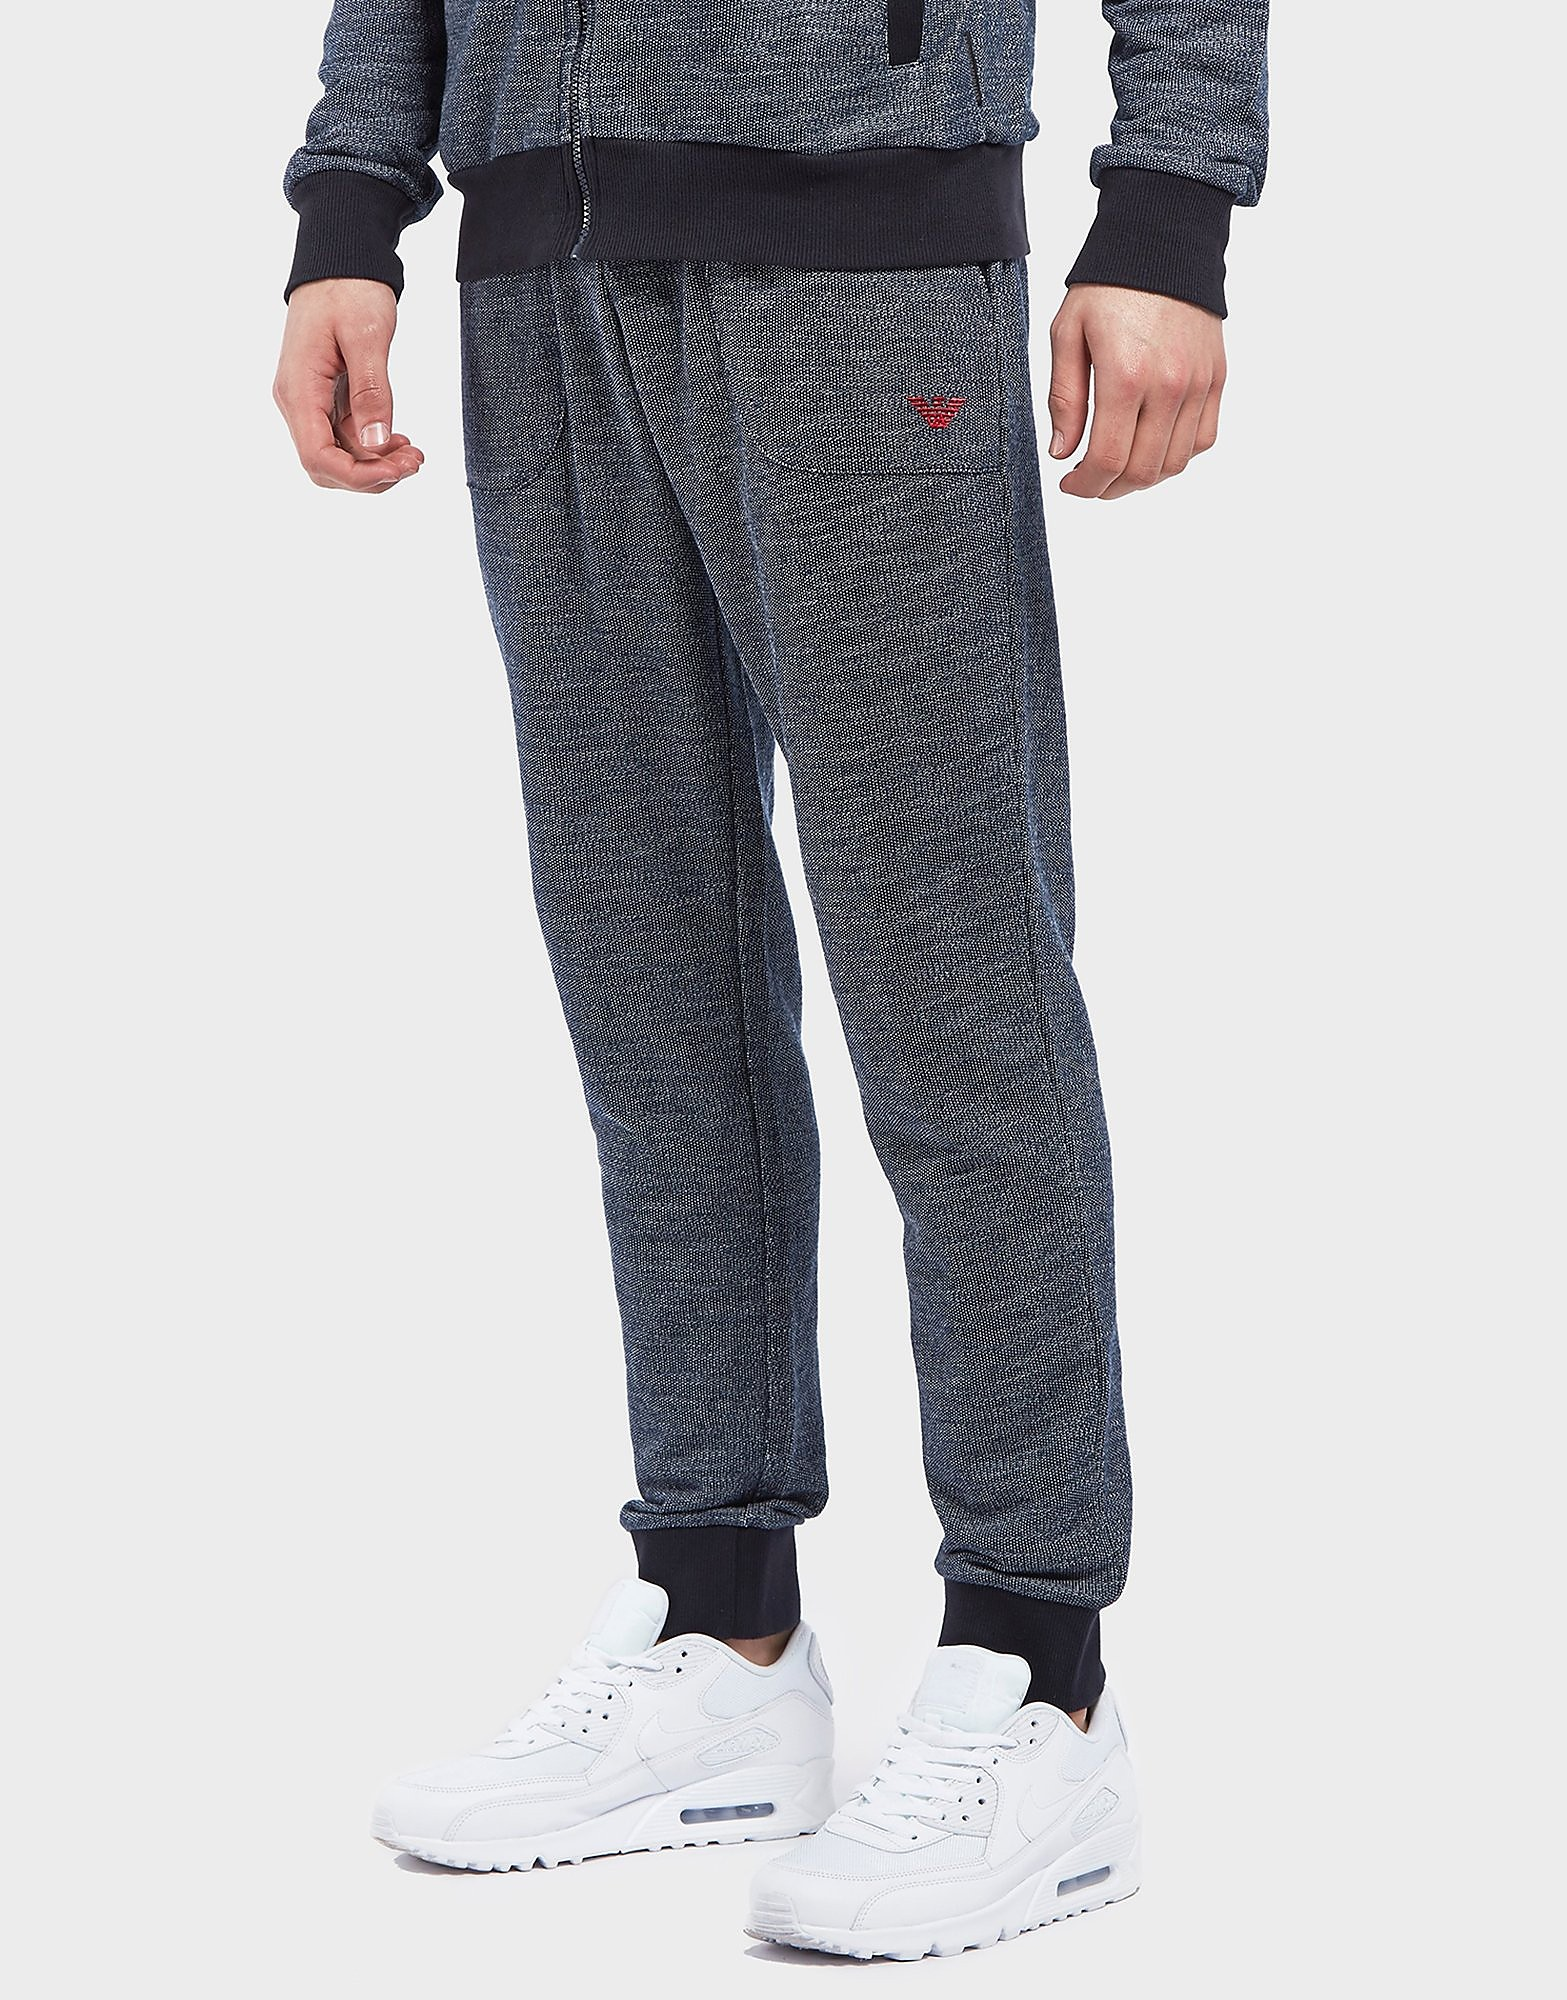 Emporio Armani Cuffed Marl Fleece Pants